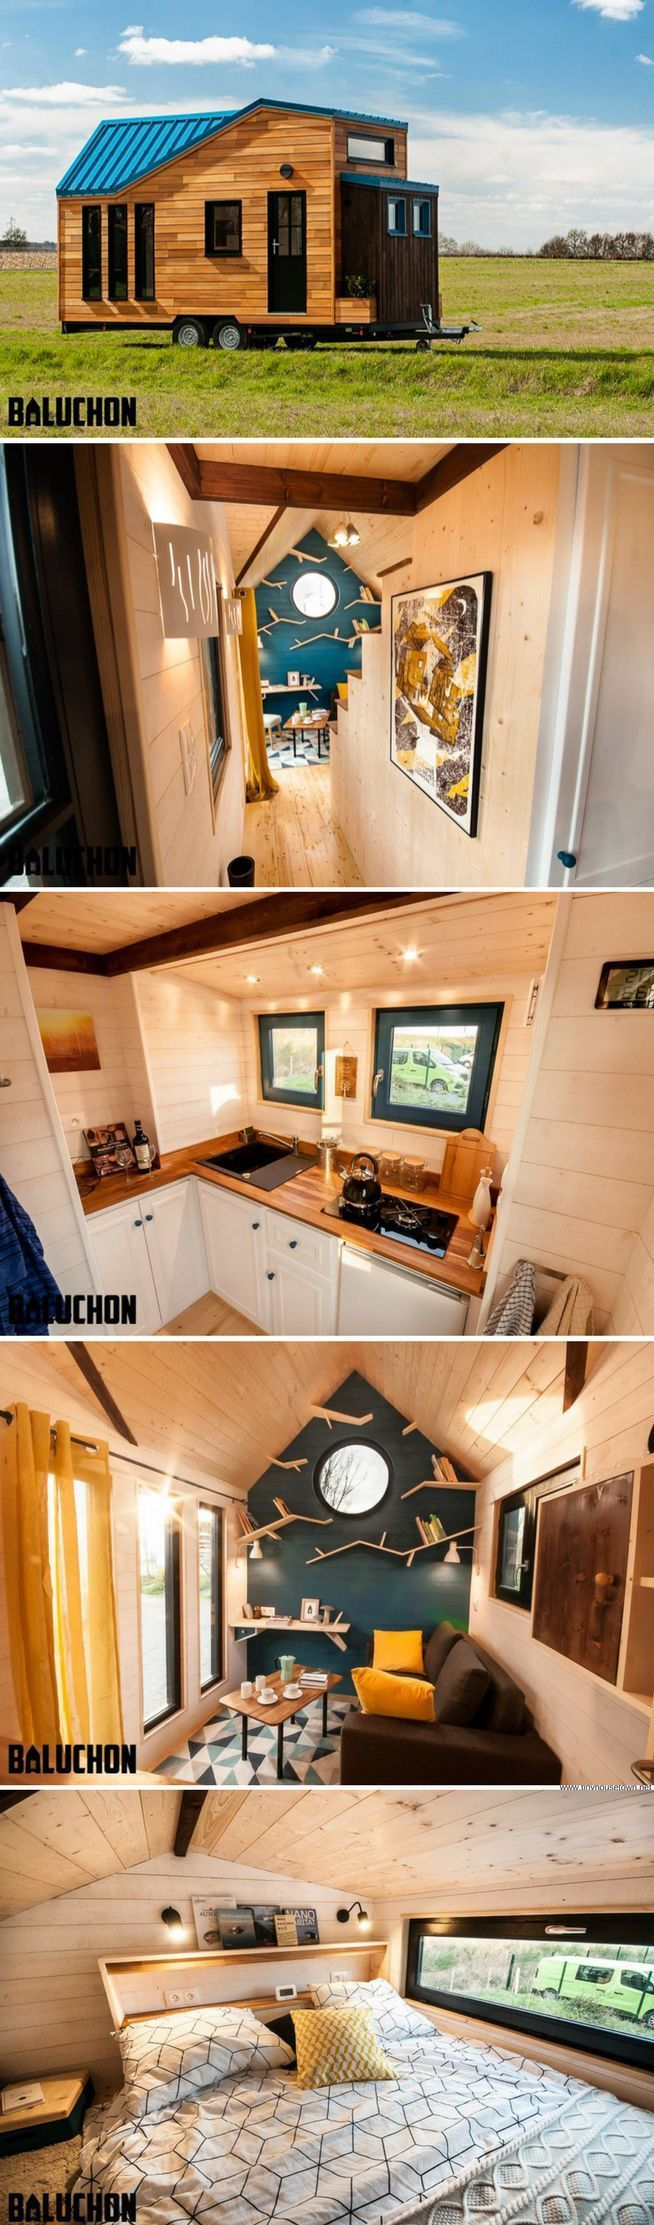 The Essen'Ciel tiny home from Baluchon// noi kirjahyllyt!!